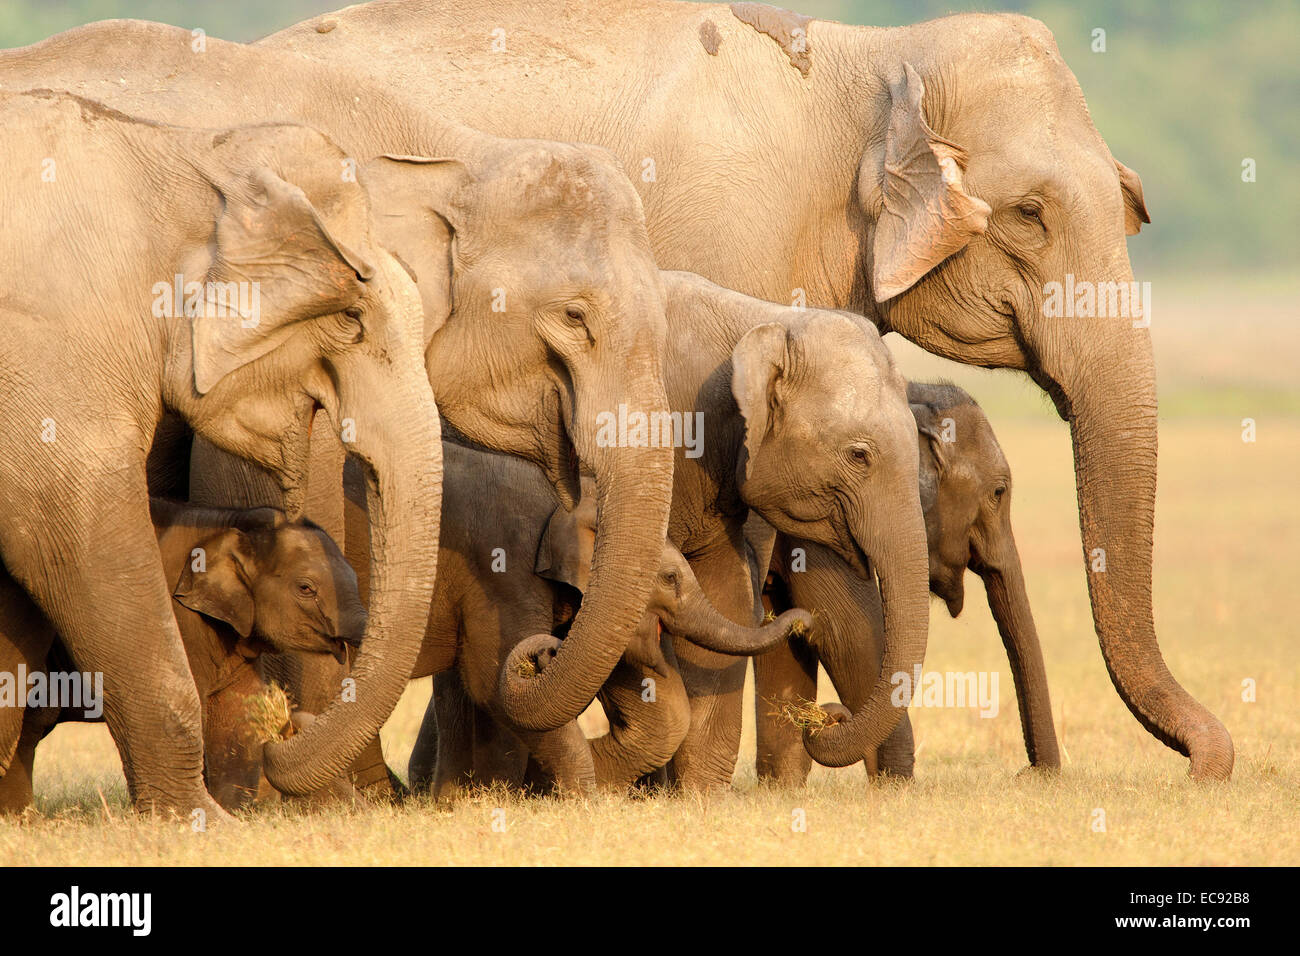 Wildlife,Indian Elephant,Pachyderm,Corbett Park,UP,Corbett Tiger Reserve,India,Endangered Species,Elephas maximus,herd,family - Stock Image